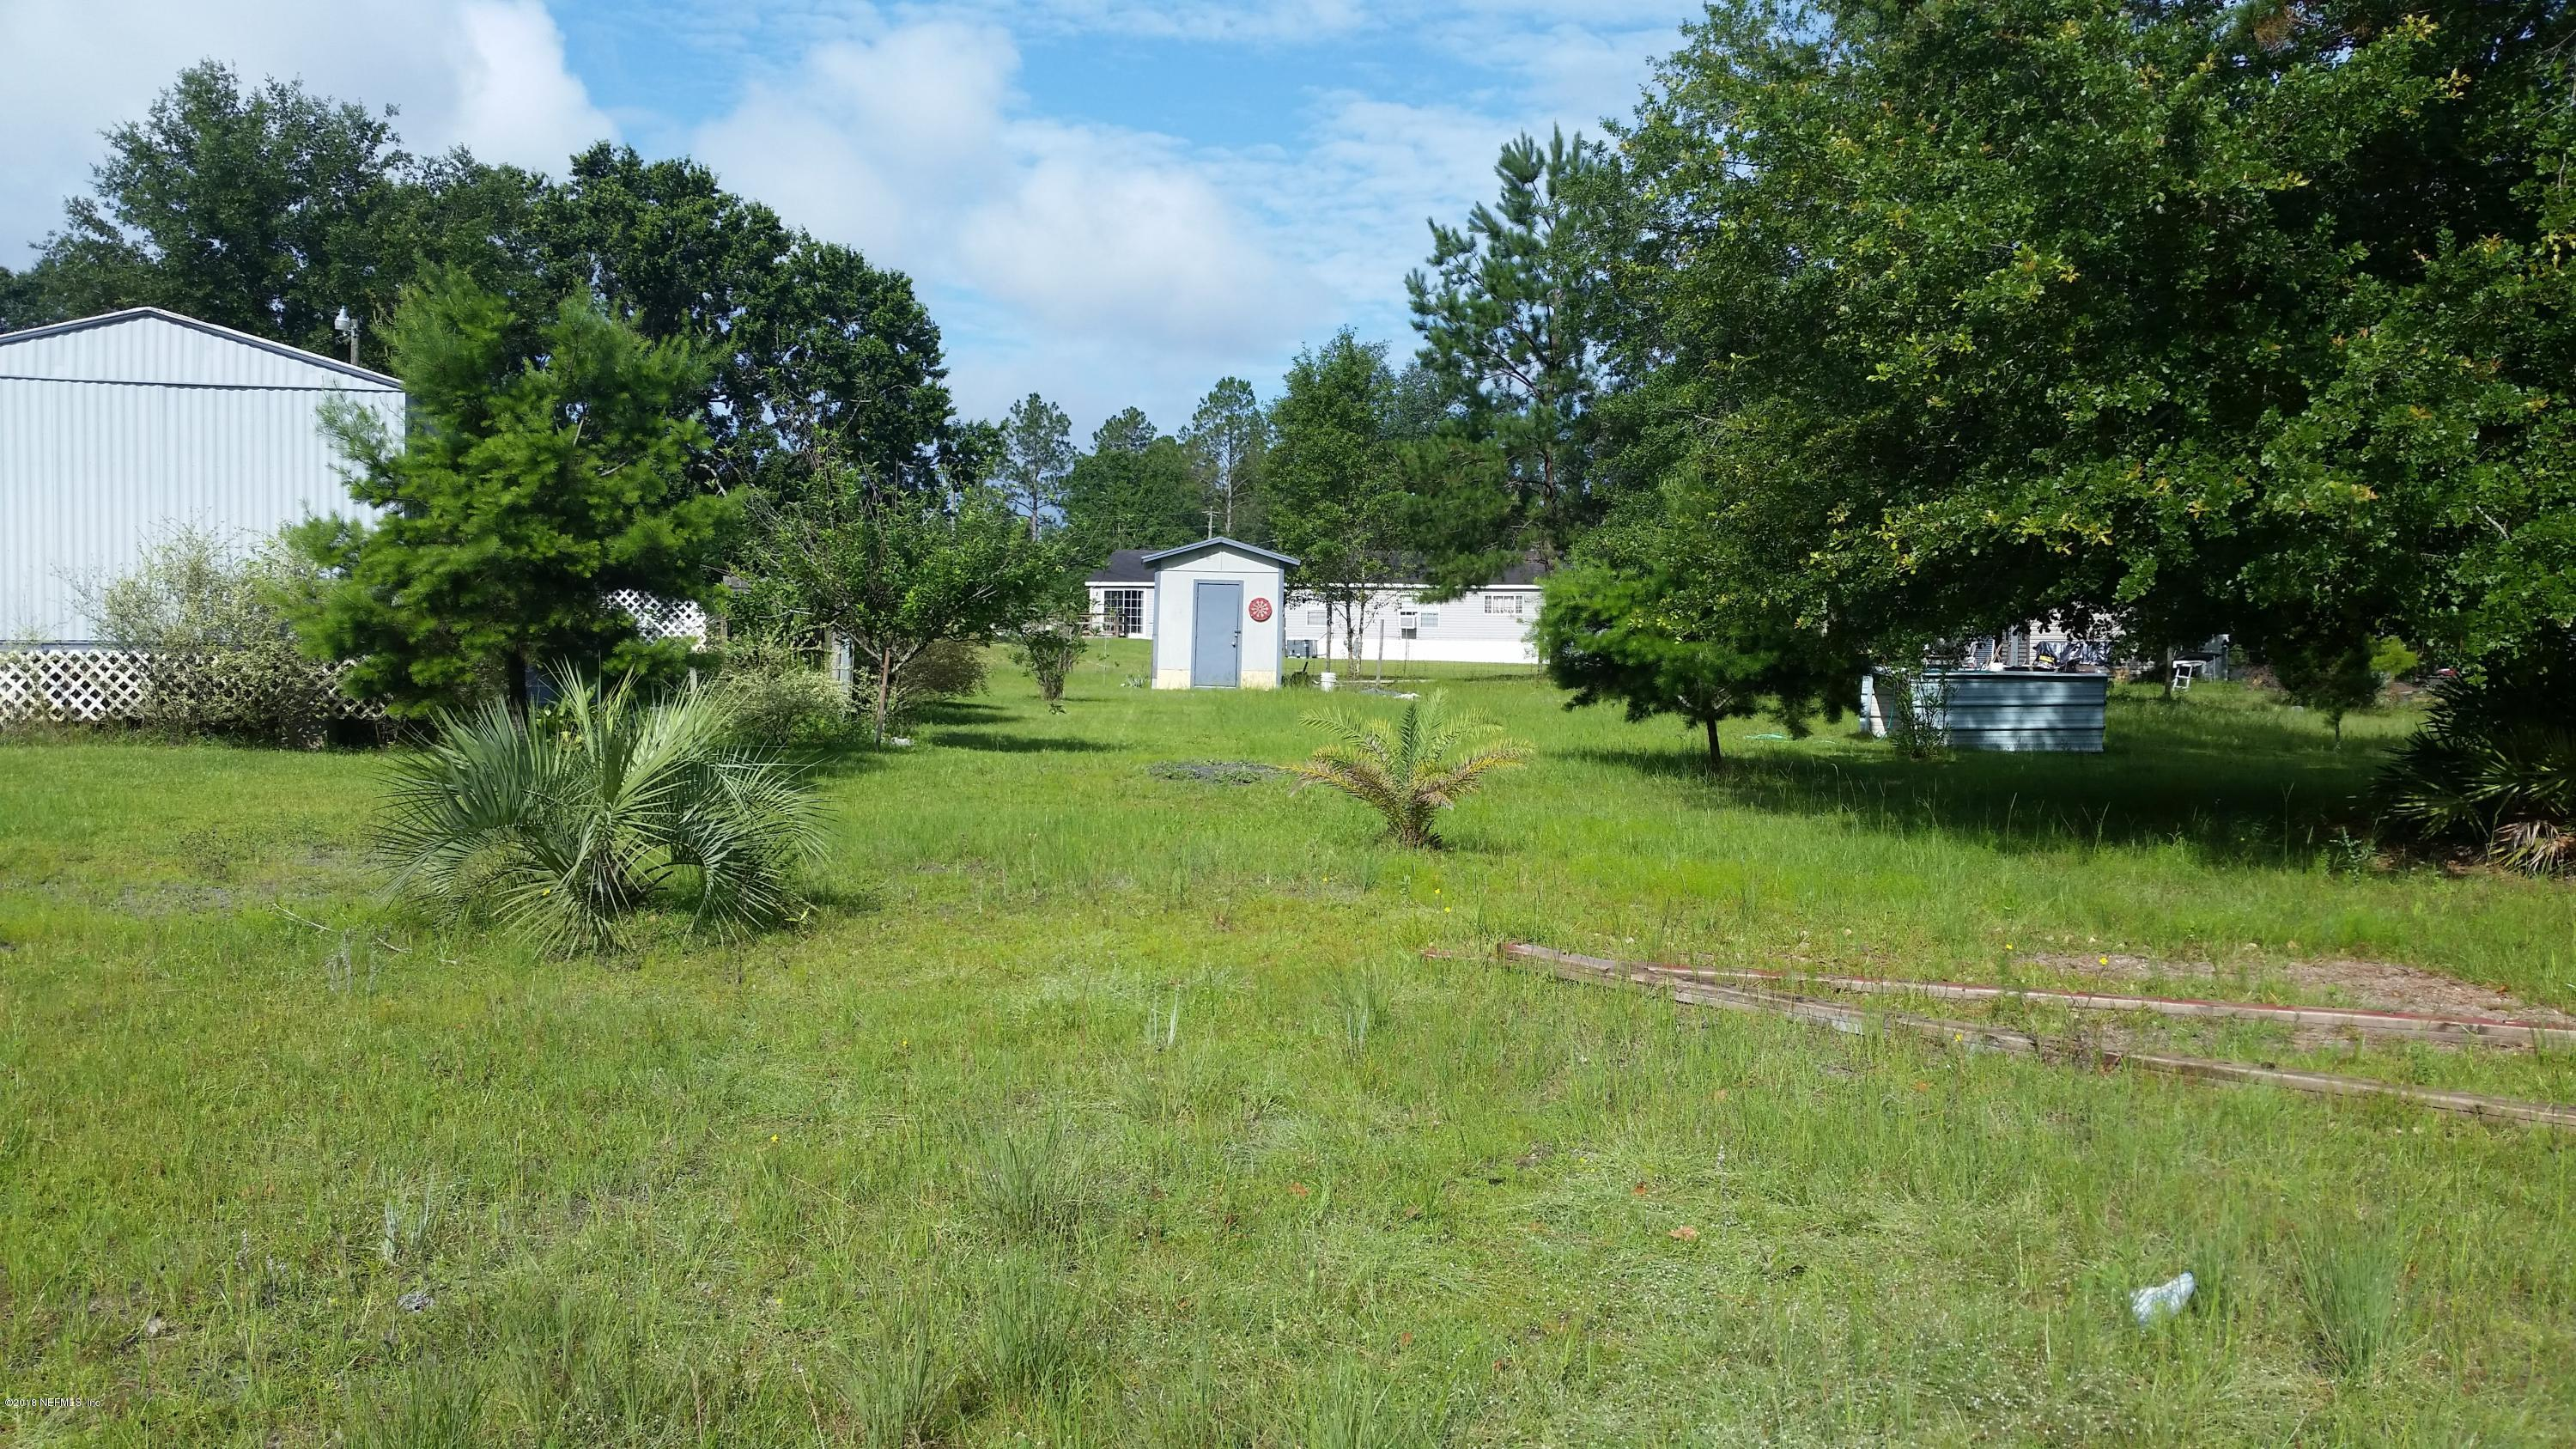 2103 CANDLEWOOD, MIDDLEBURG, FLORIDA 32068, 2 Bedrooms Bedrooms, ,1 BathroomBathrooms,Residential - mobile home,For sale,CANDLEWOOD,942855